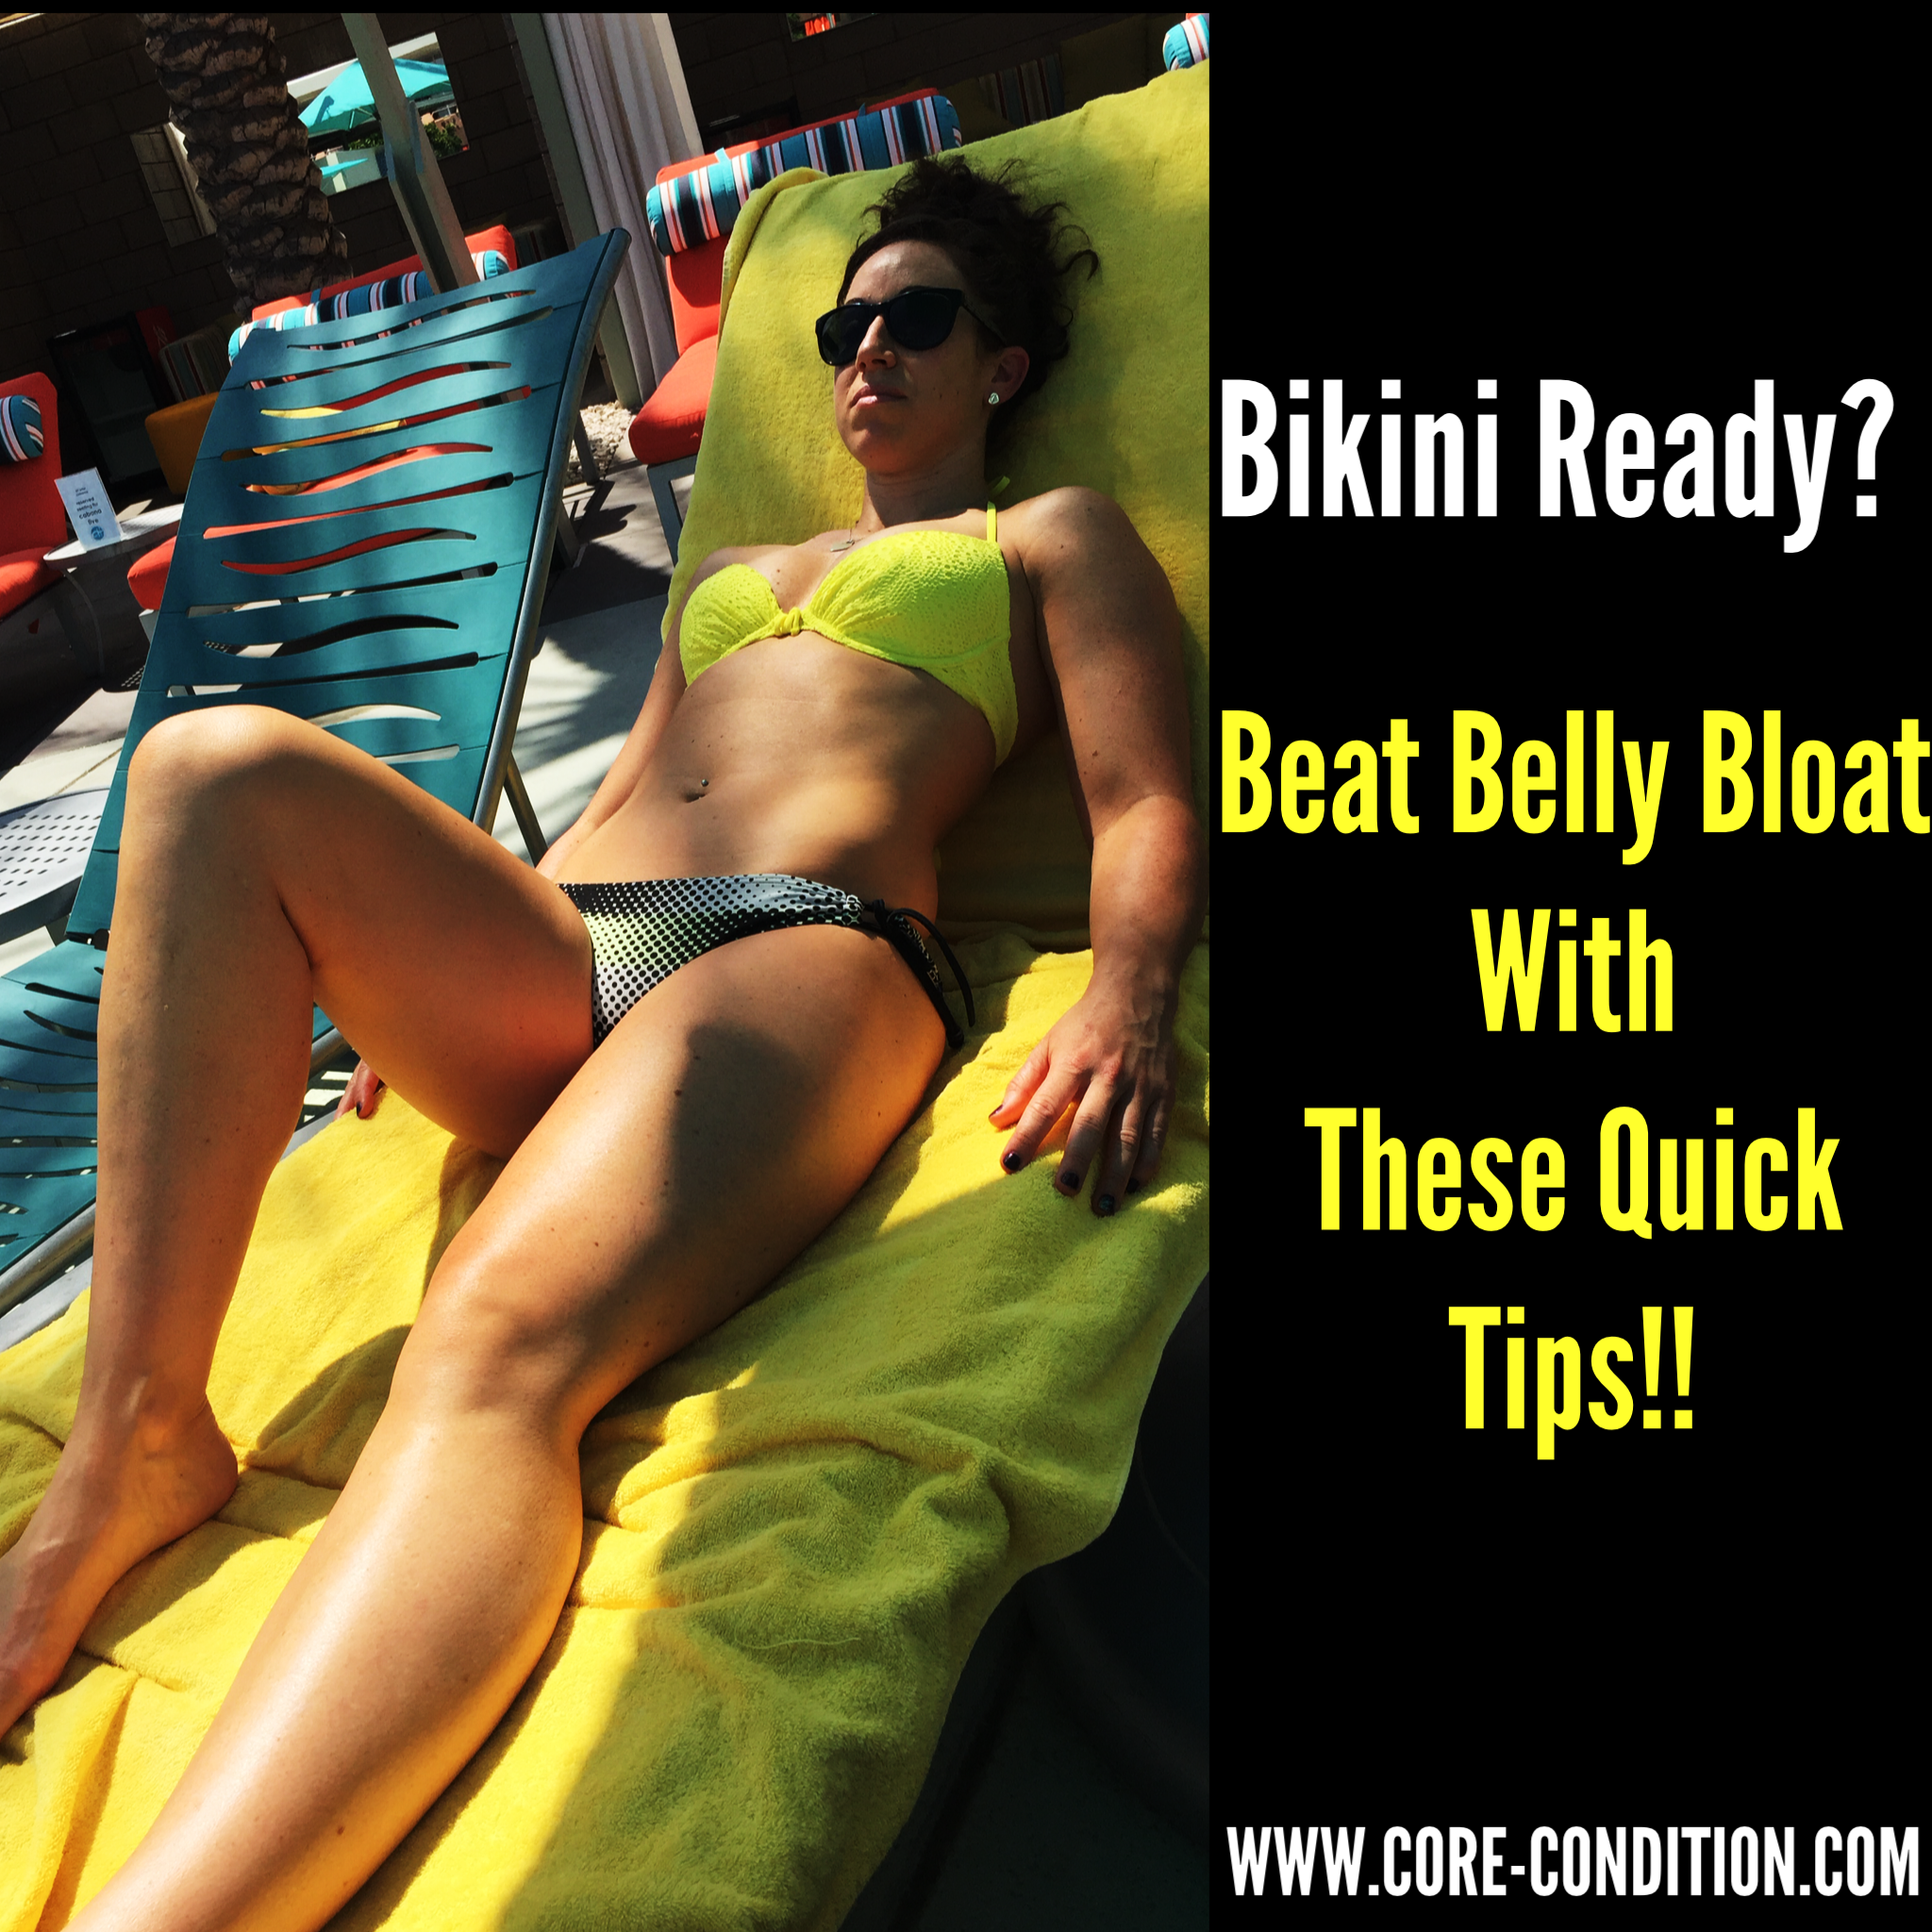 Bikini Ready? Beat Belly Bloat With These Quick Tips!